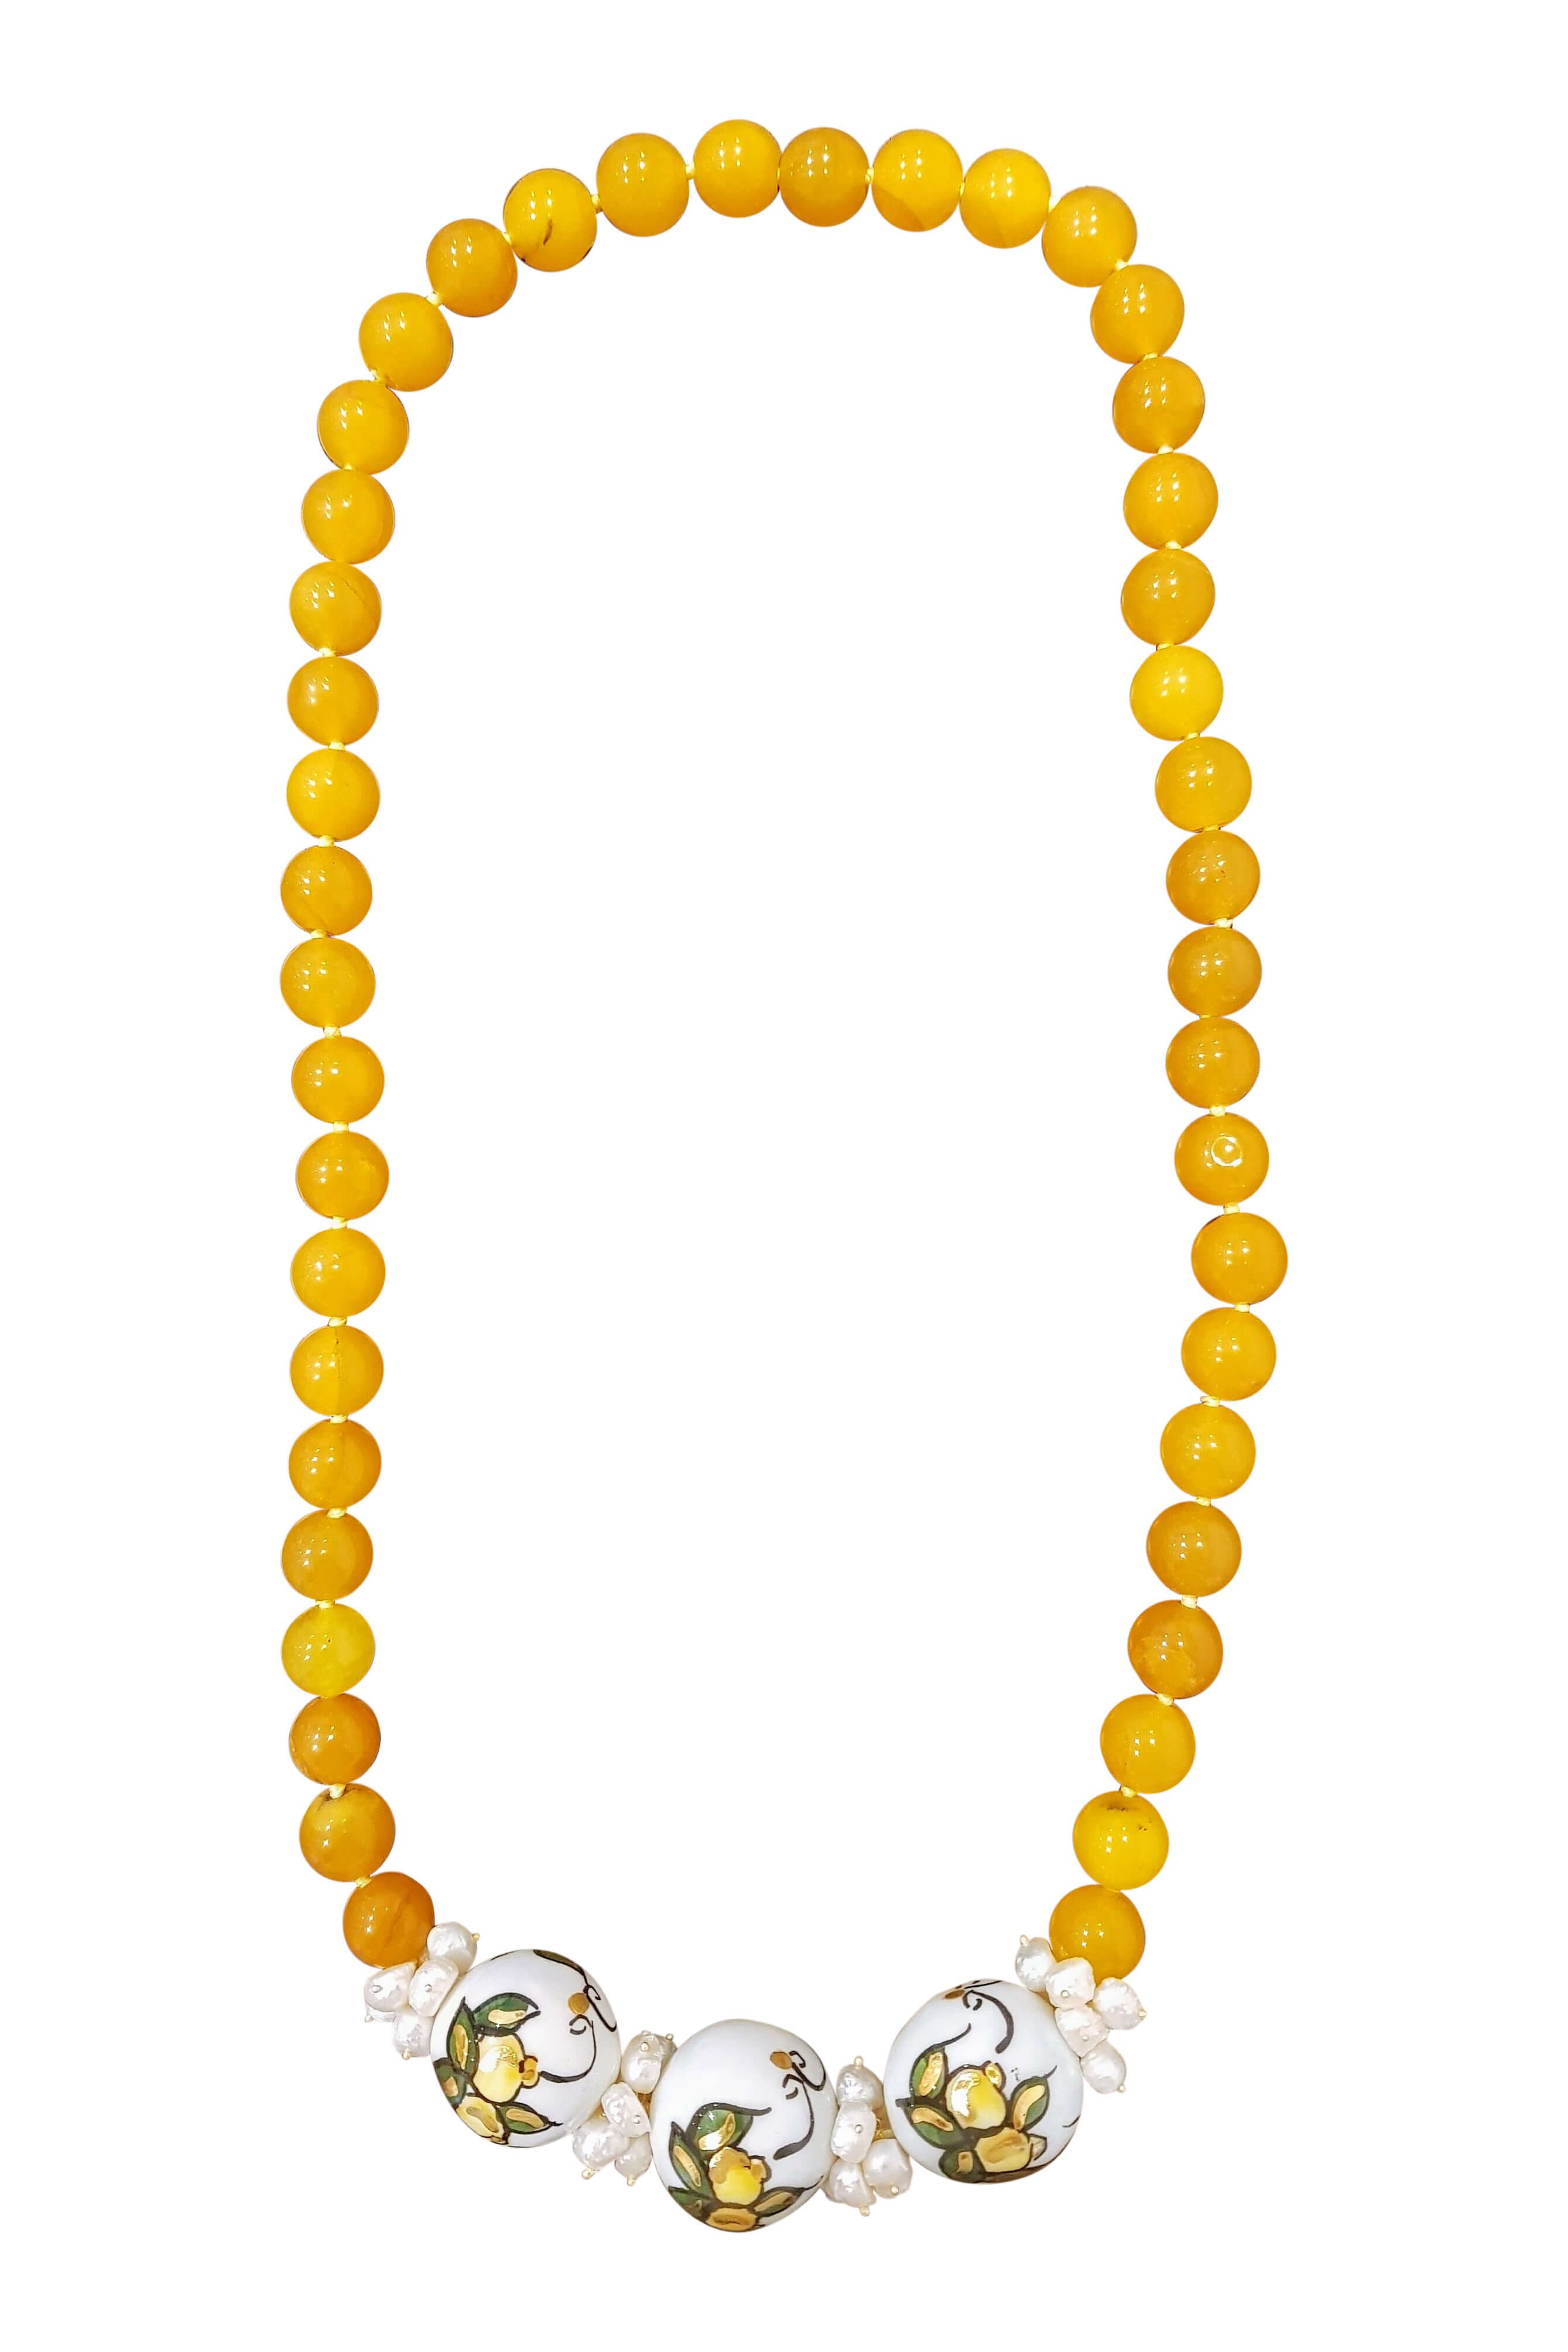 necklace with citrines, sweet water pearls and painted ceramics with lemons ALICUDI